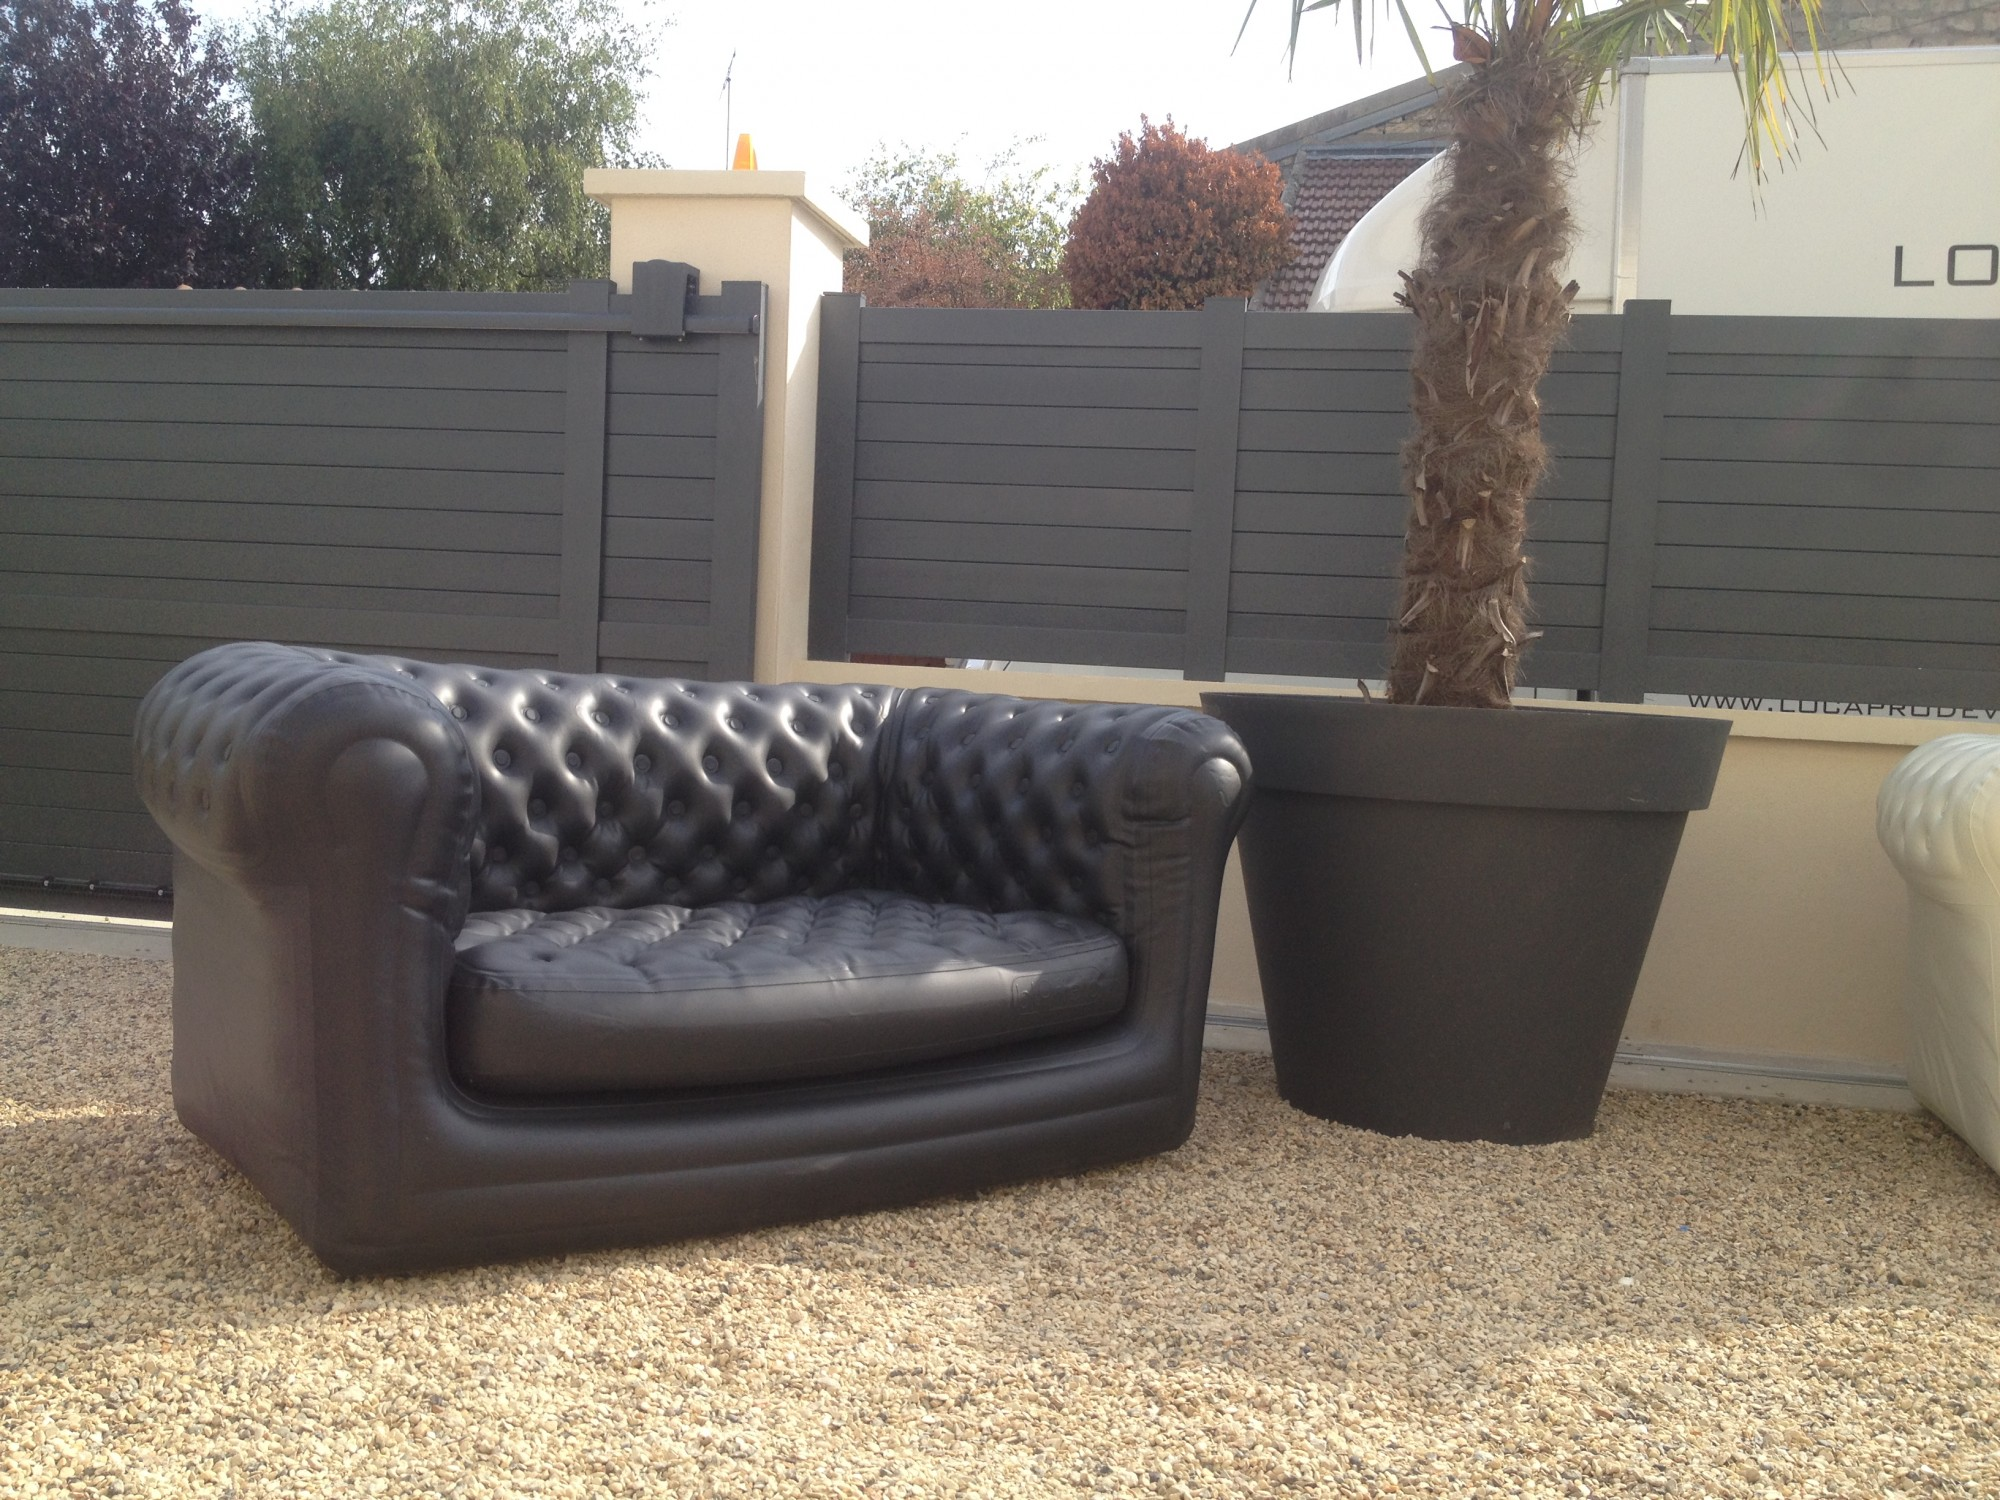 Location de canap chesterfield gonflable noir location for Location mobilier exterieur